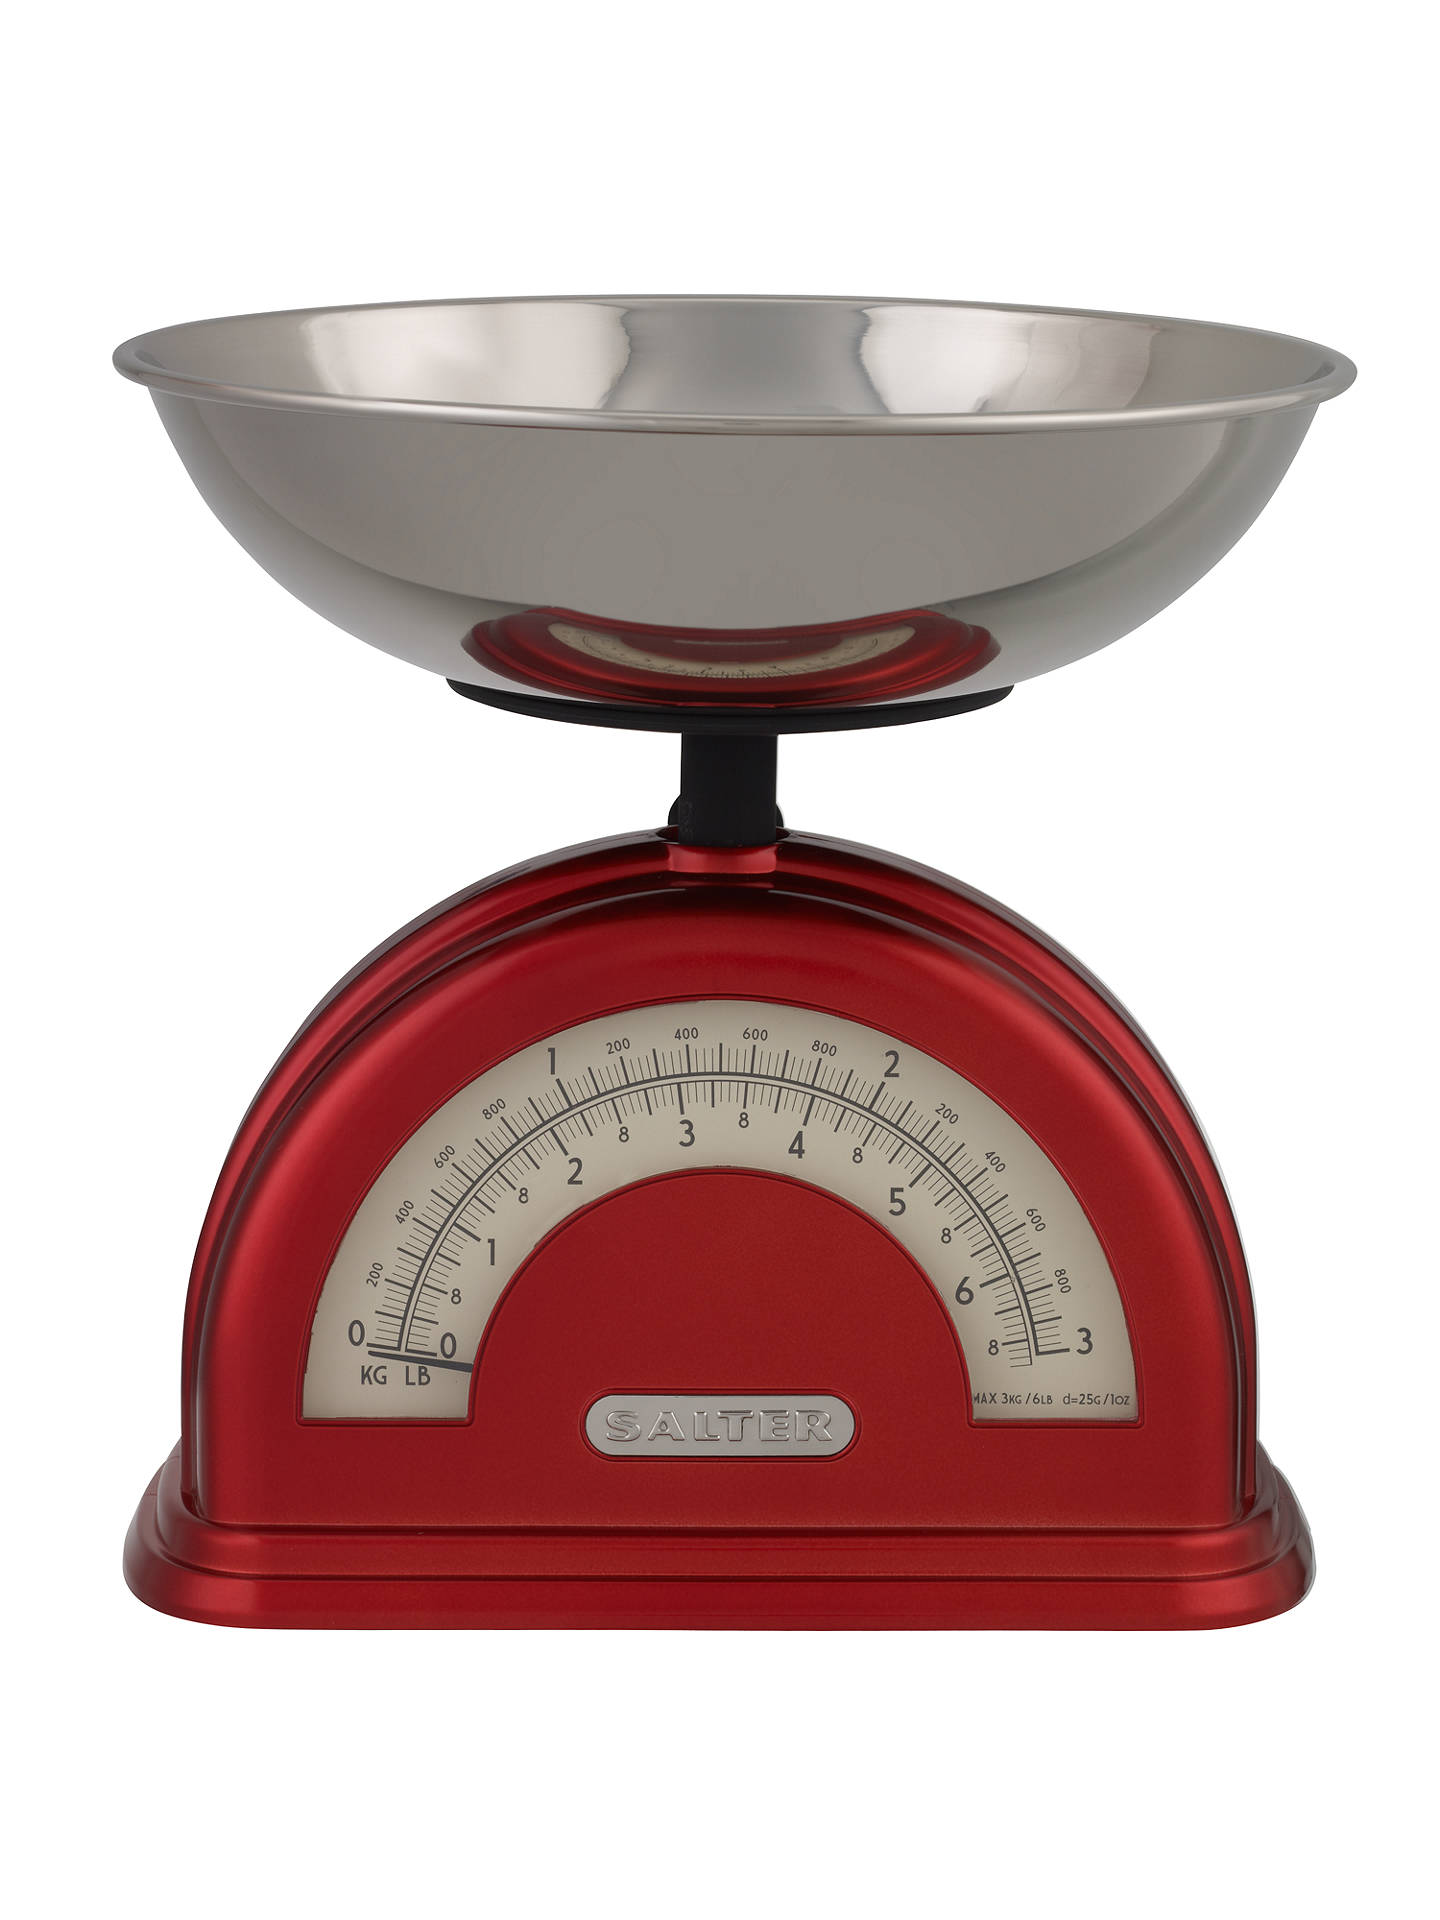 Salter Vintage Mechanical Kitchen Scale Red At John Lewis Partners